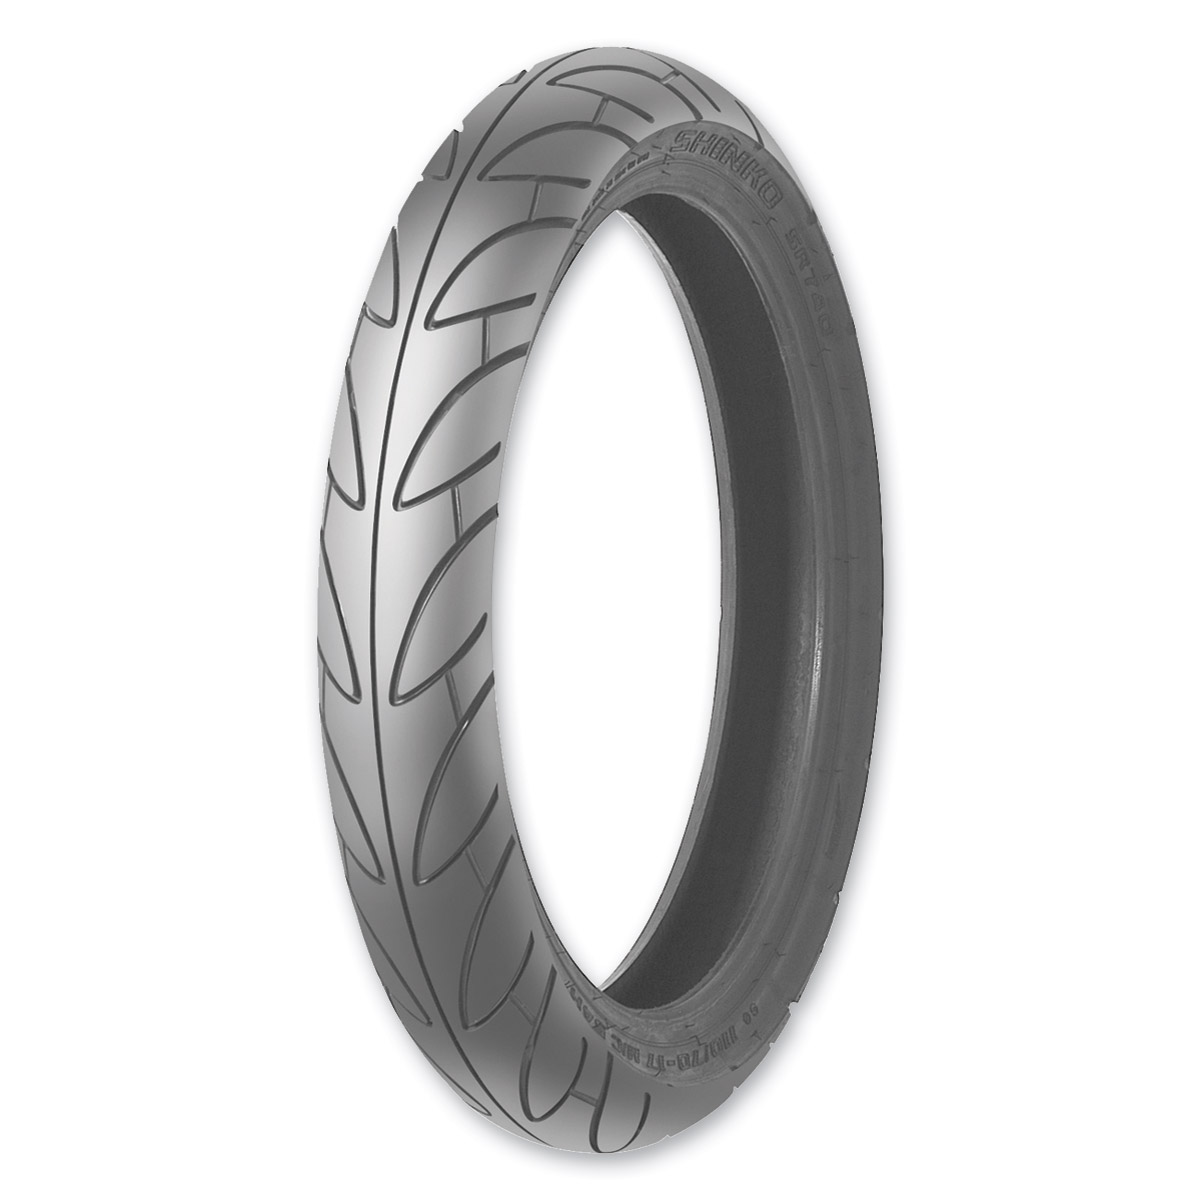 Shinko SR740 110/80-17 Front Tire